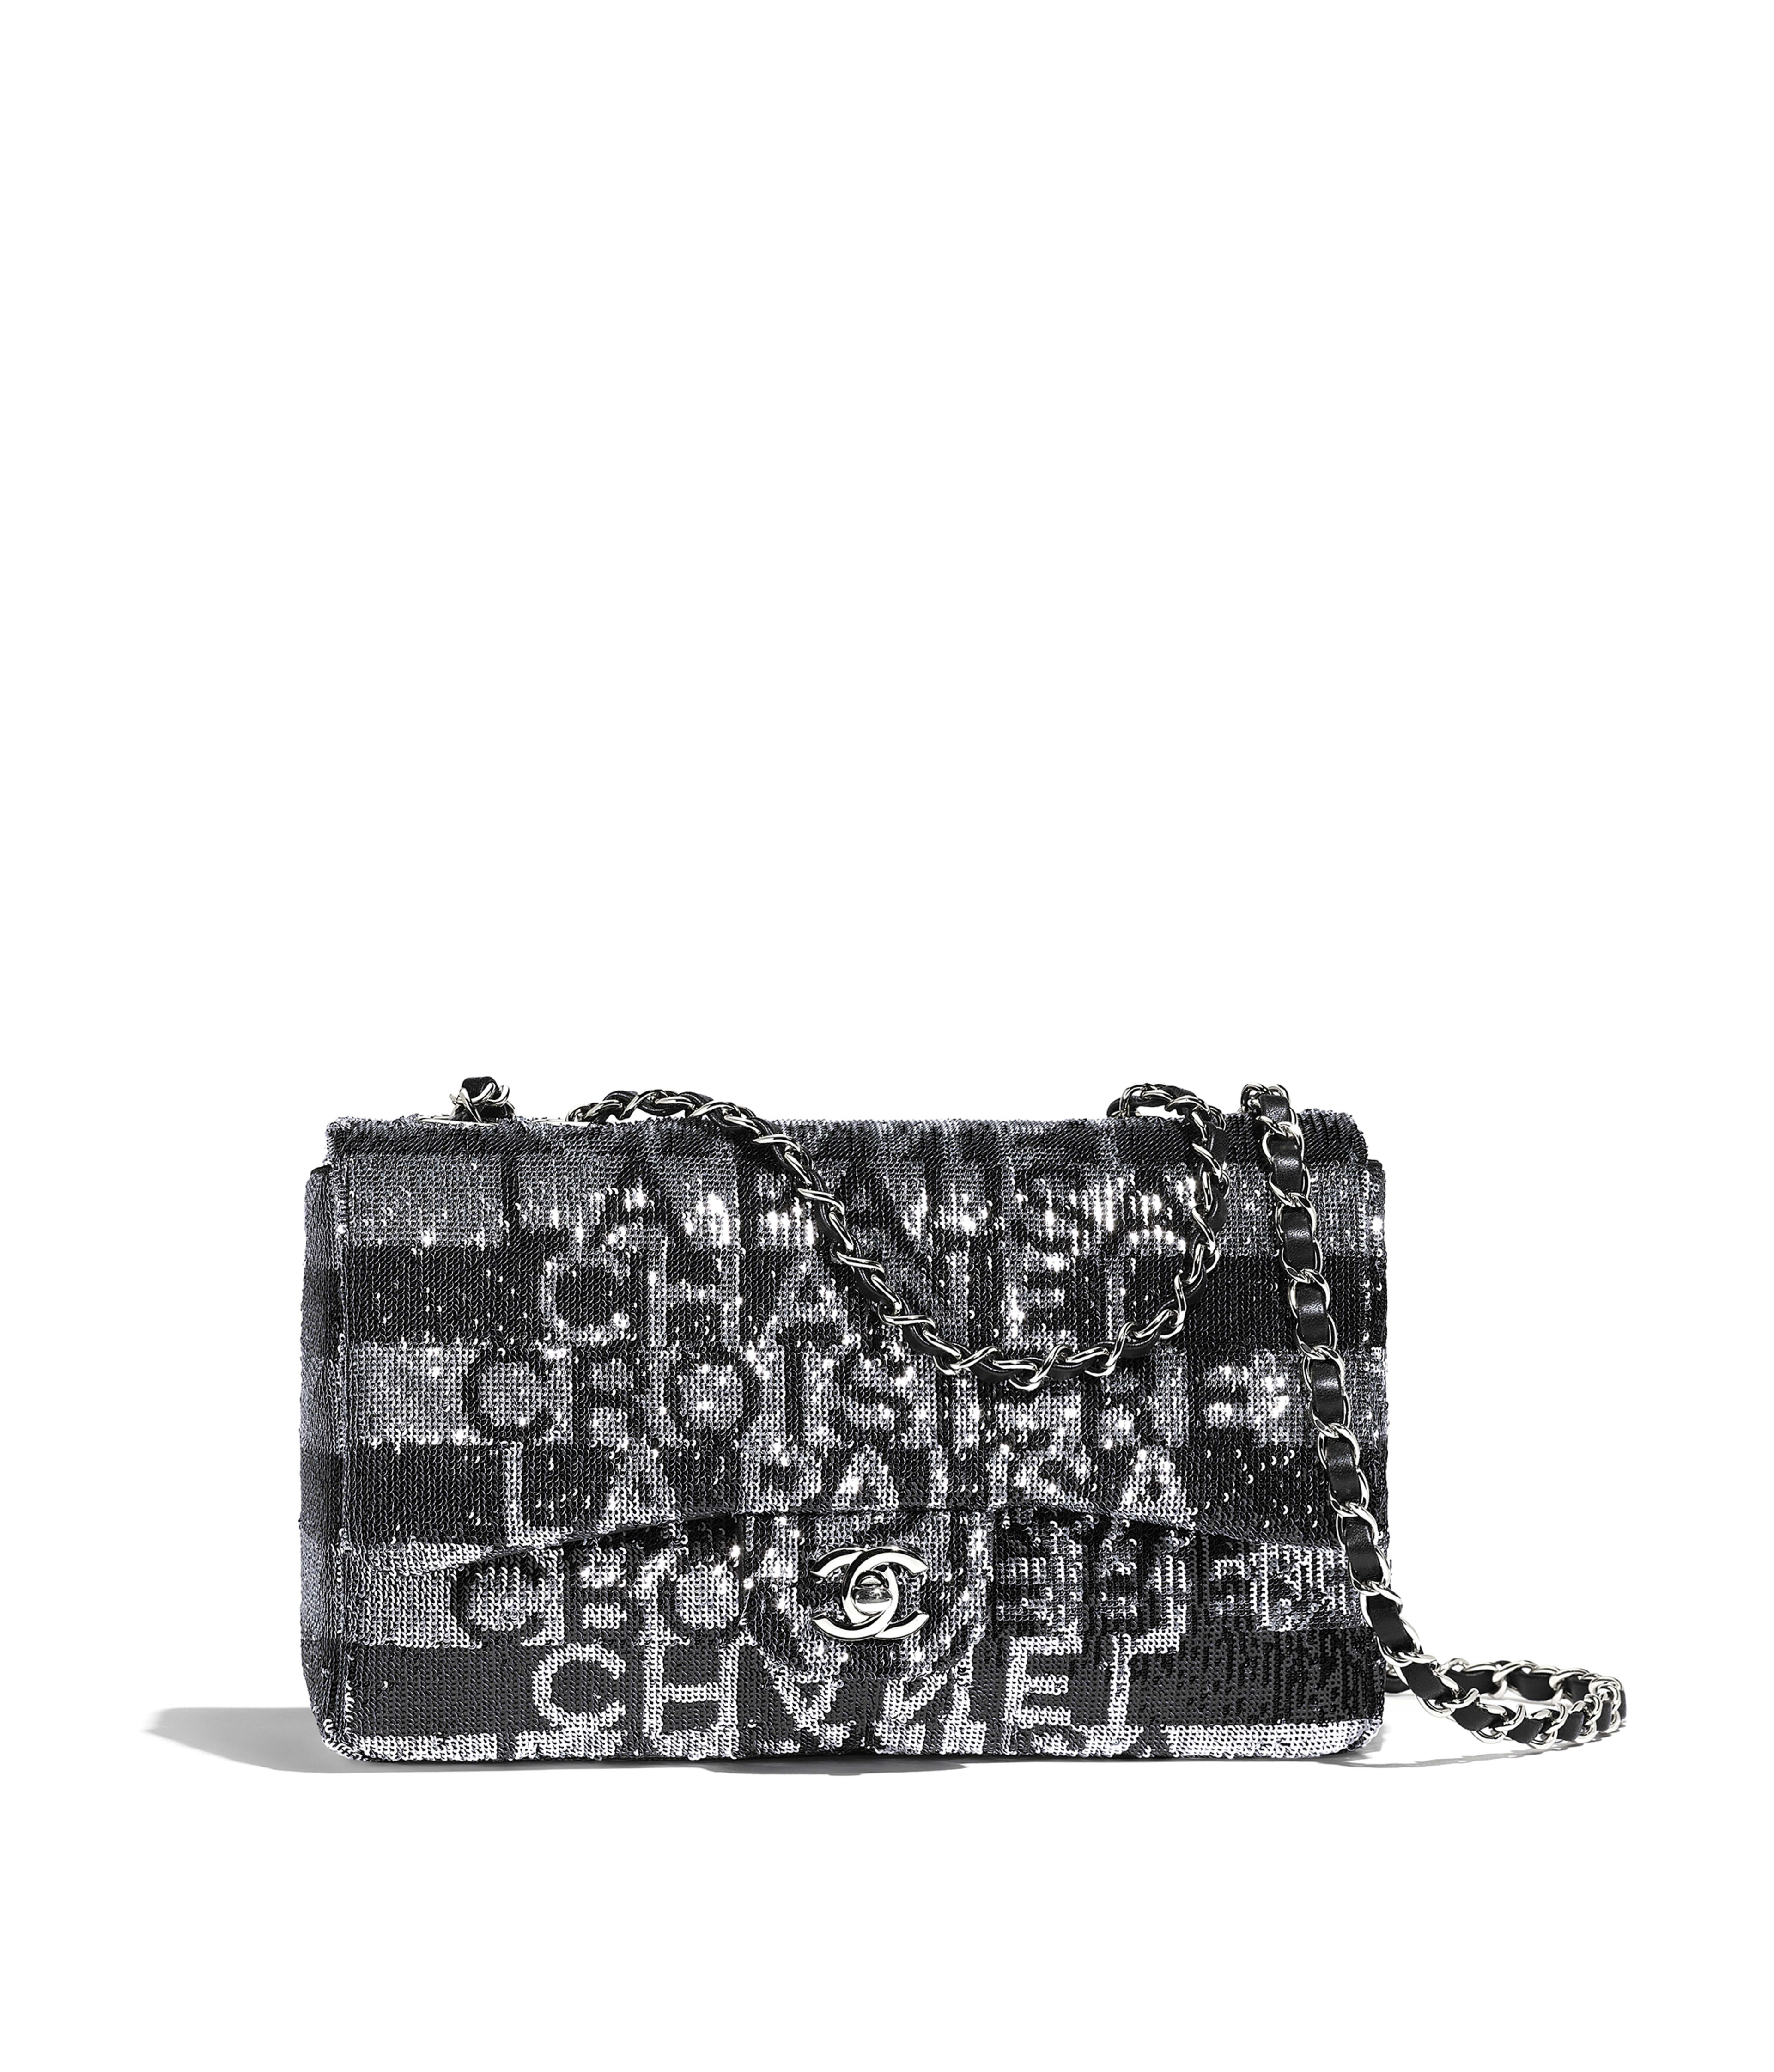 Flap Bag Embroidered Satin Sequins Silver Tone Metal Black Ref As0253y84184c0625